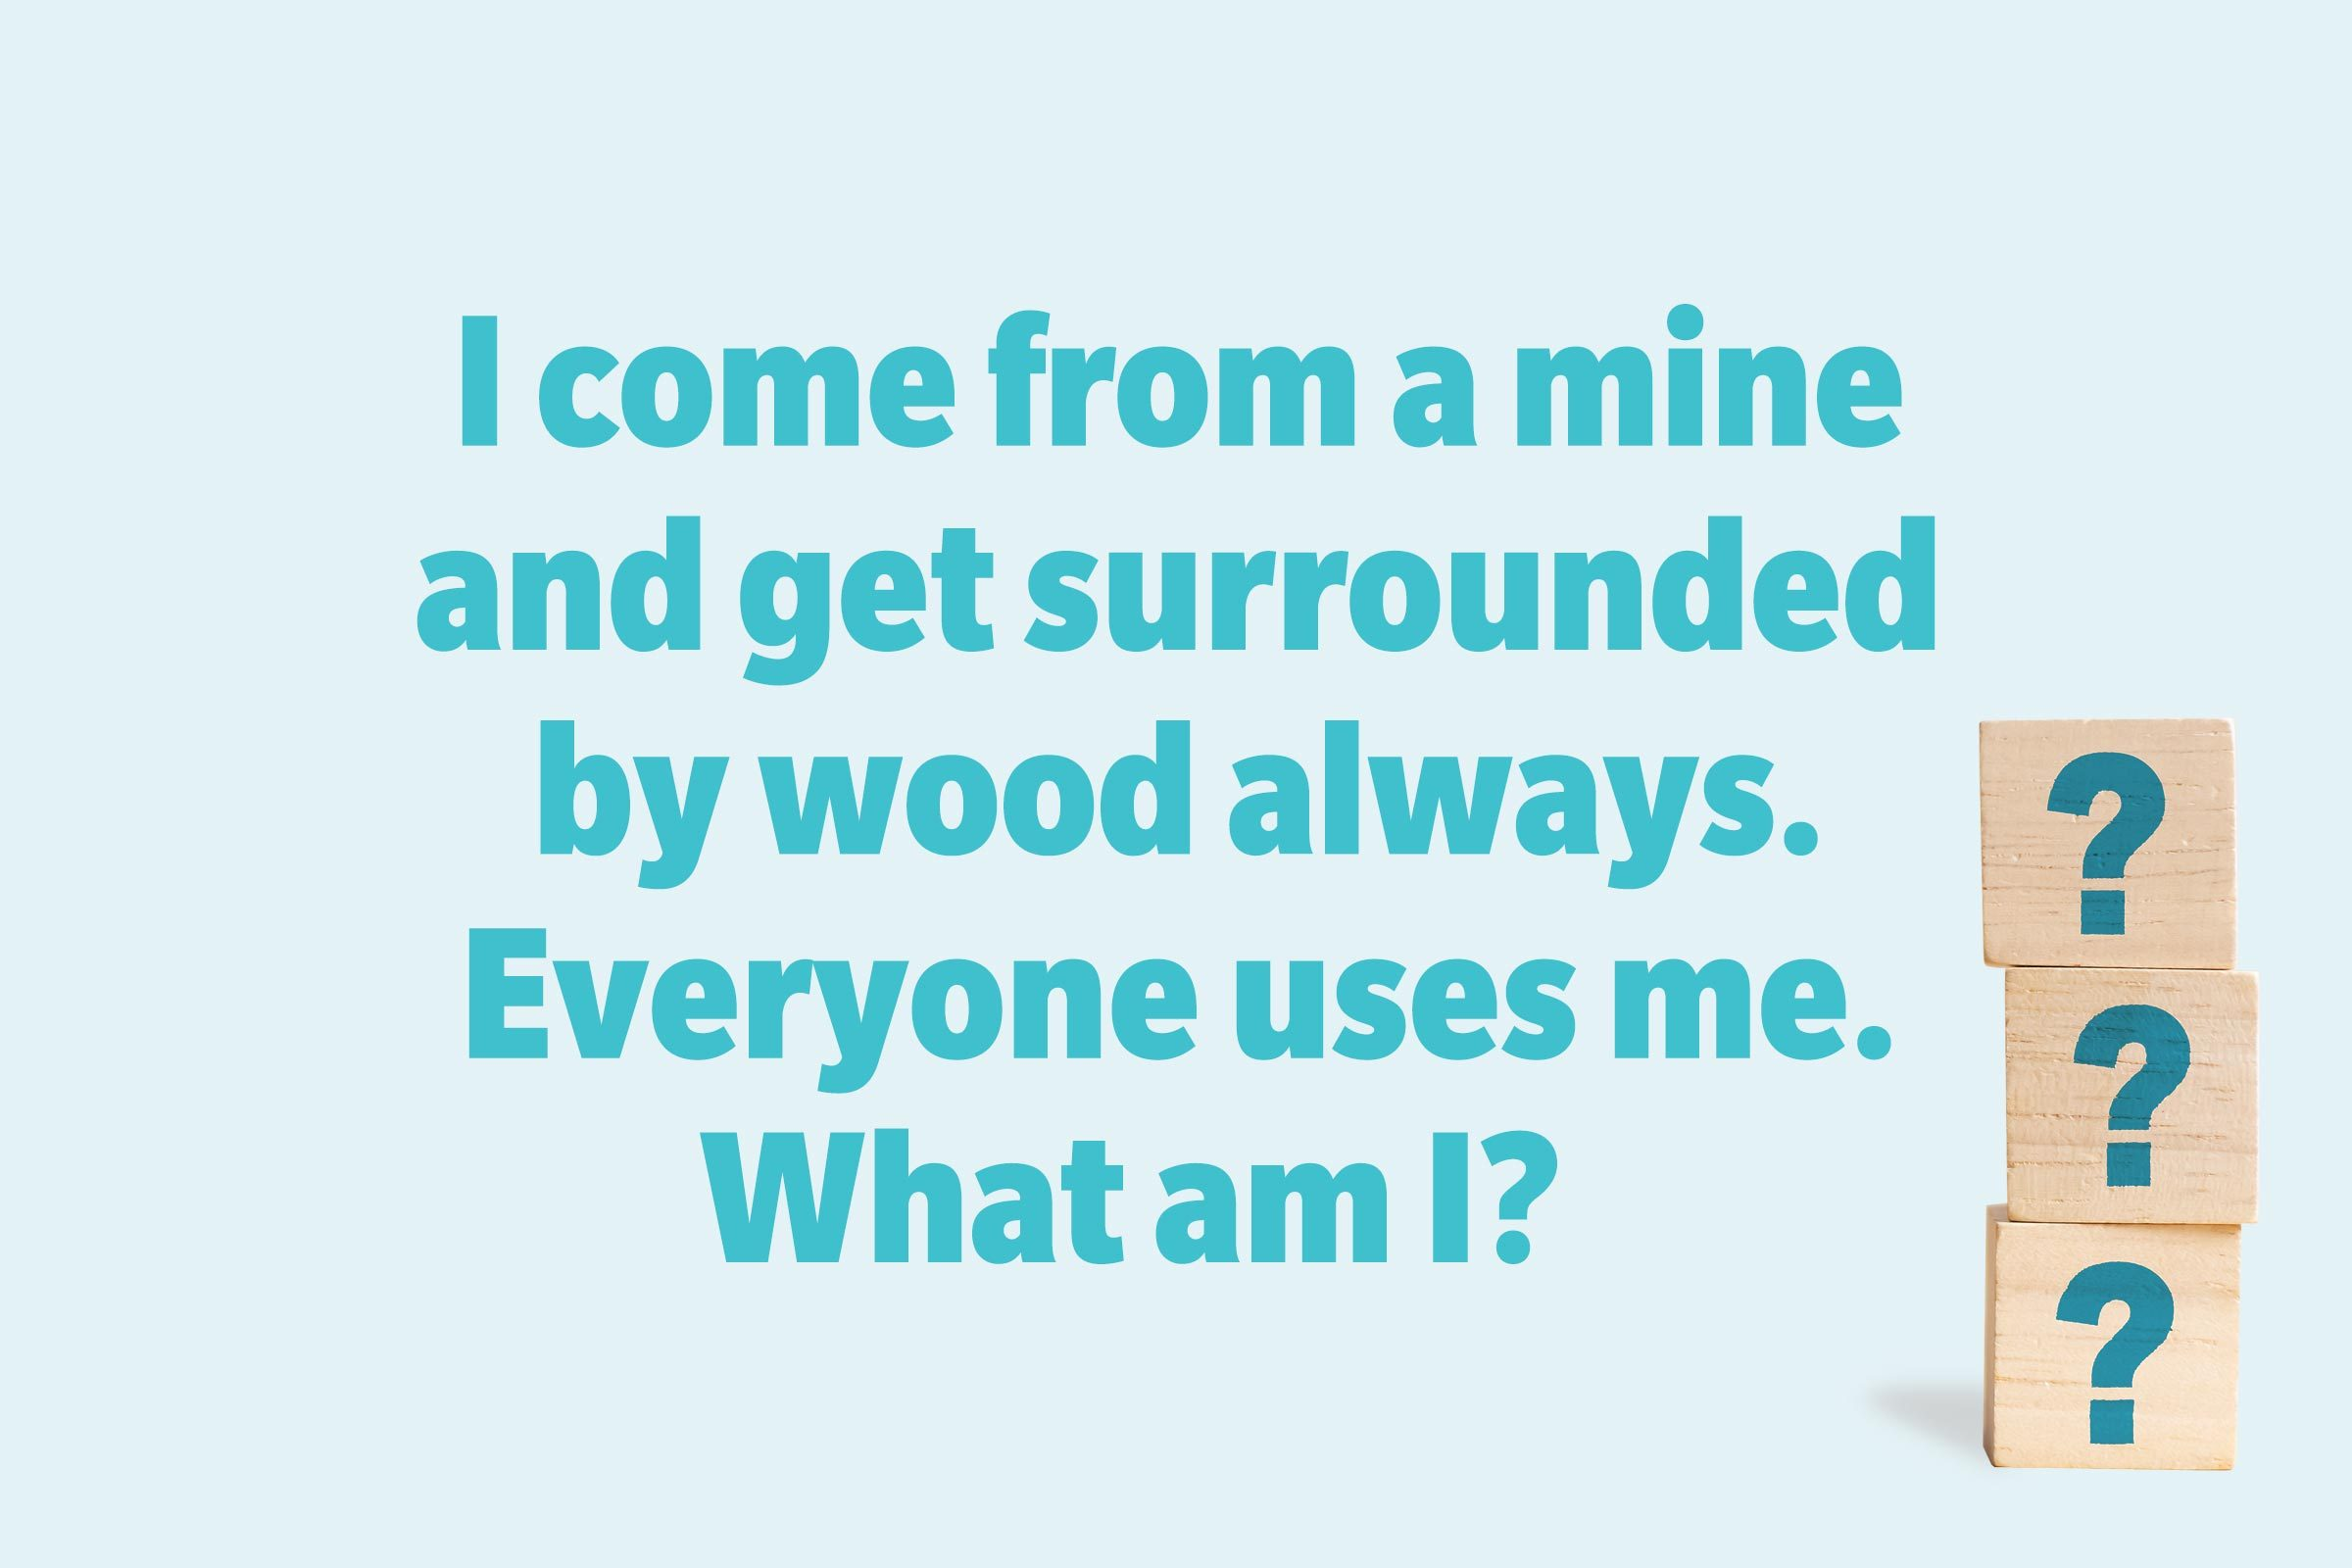 I come from a mine and get surrounded by wood always. Everyone uses me. What am I?